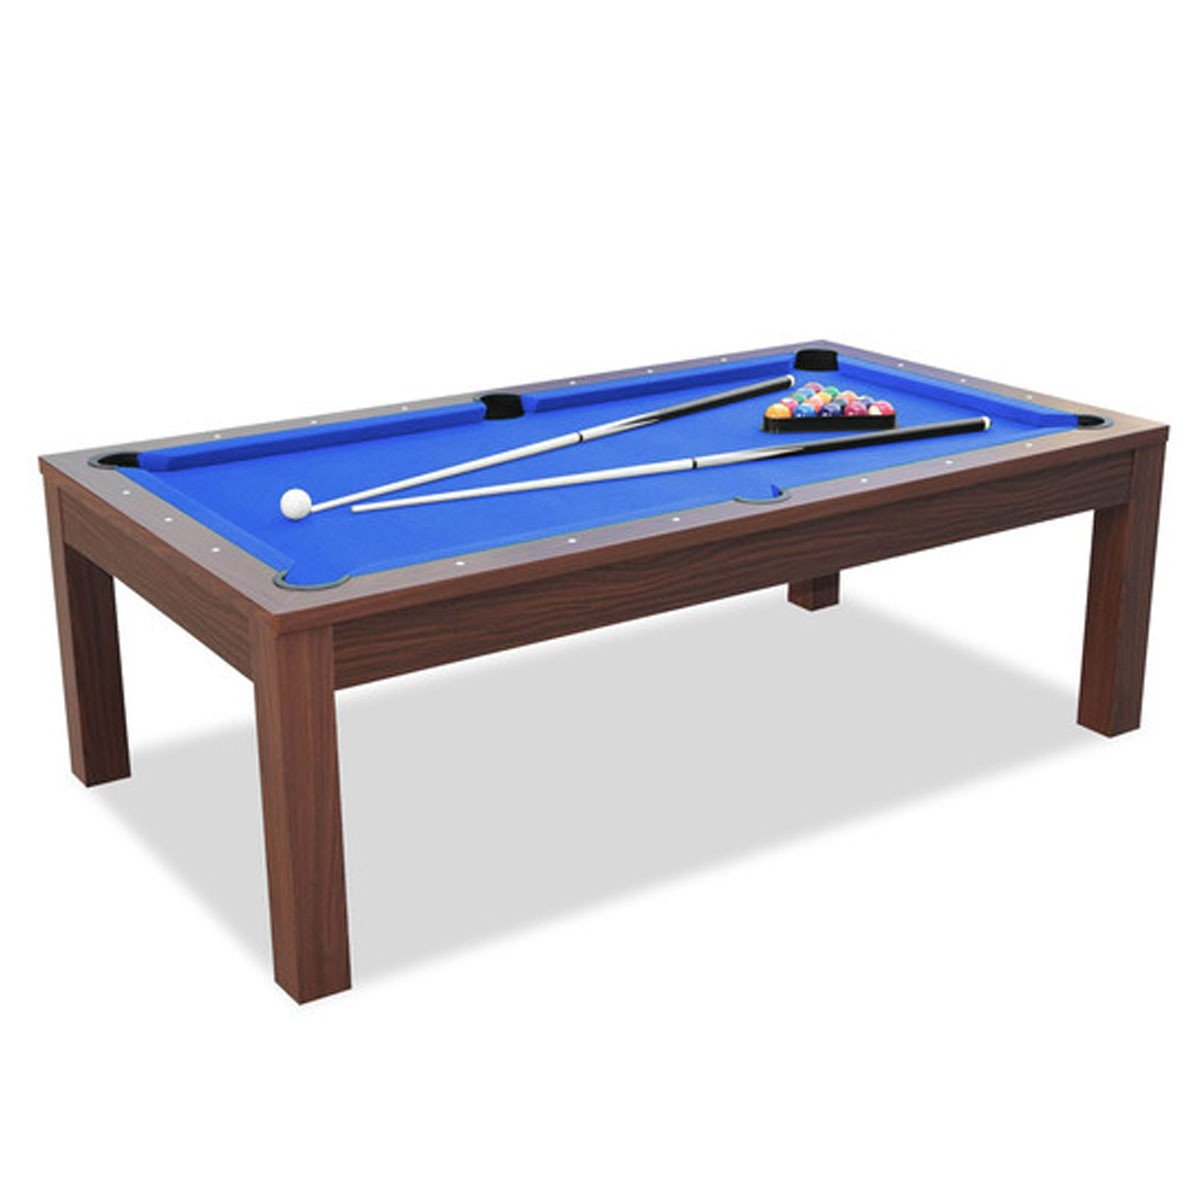 7 Foot Pool Table Accessories (ZLB-P32)